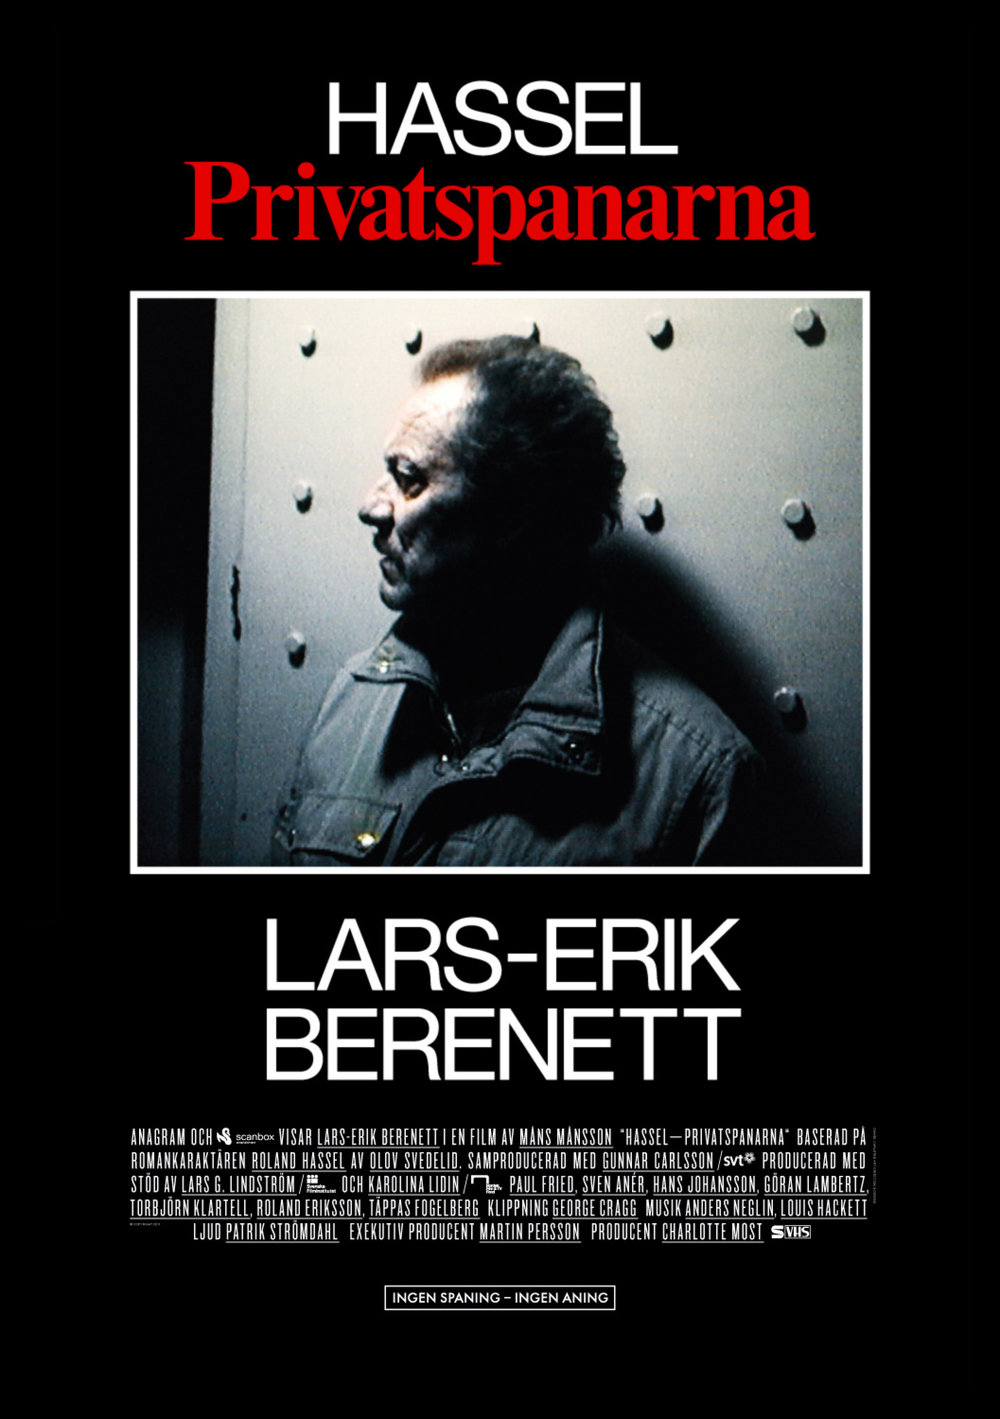 HASSEL Poster for Måns Månsson's feature film